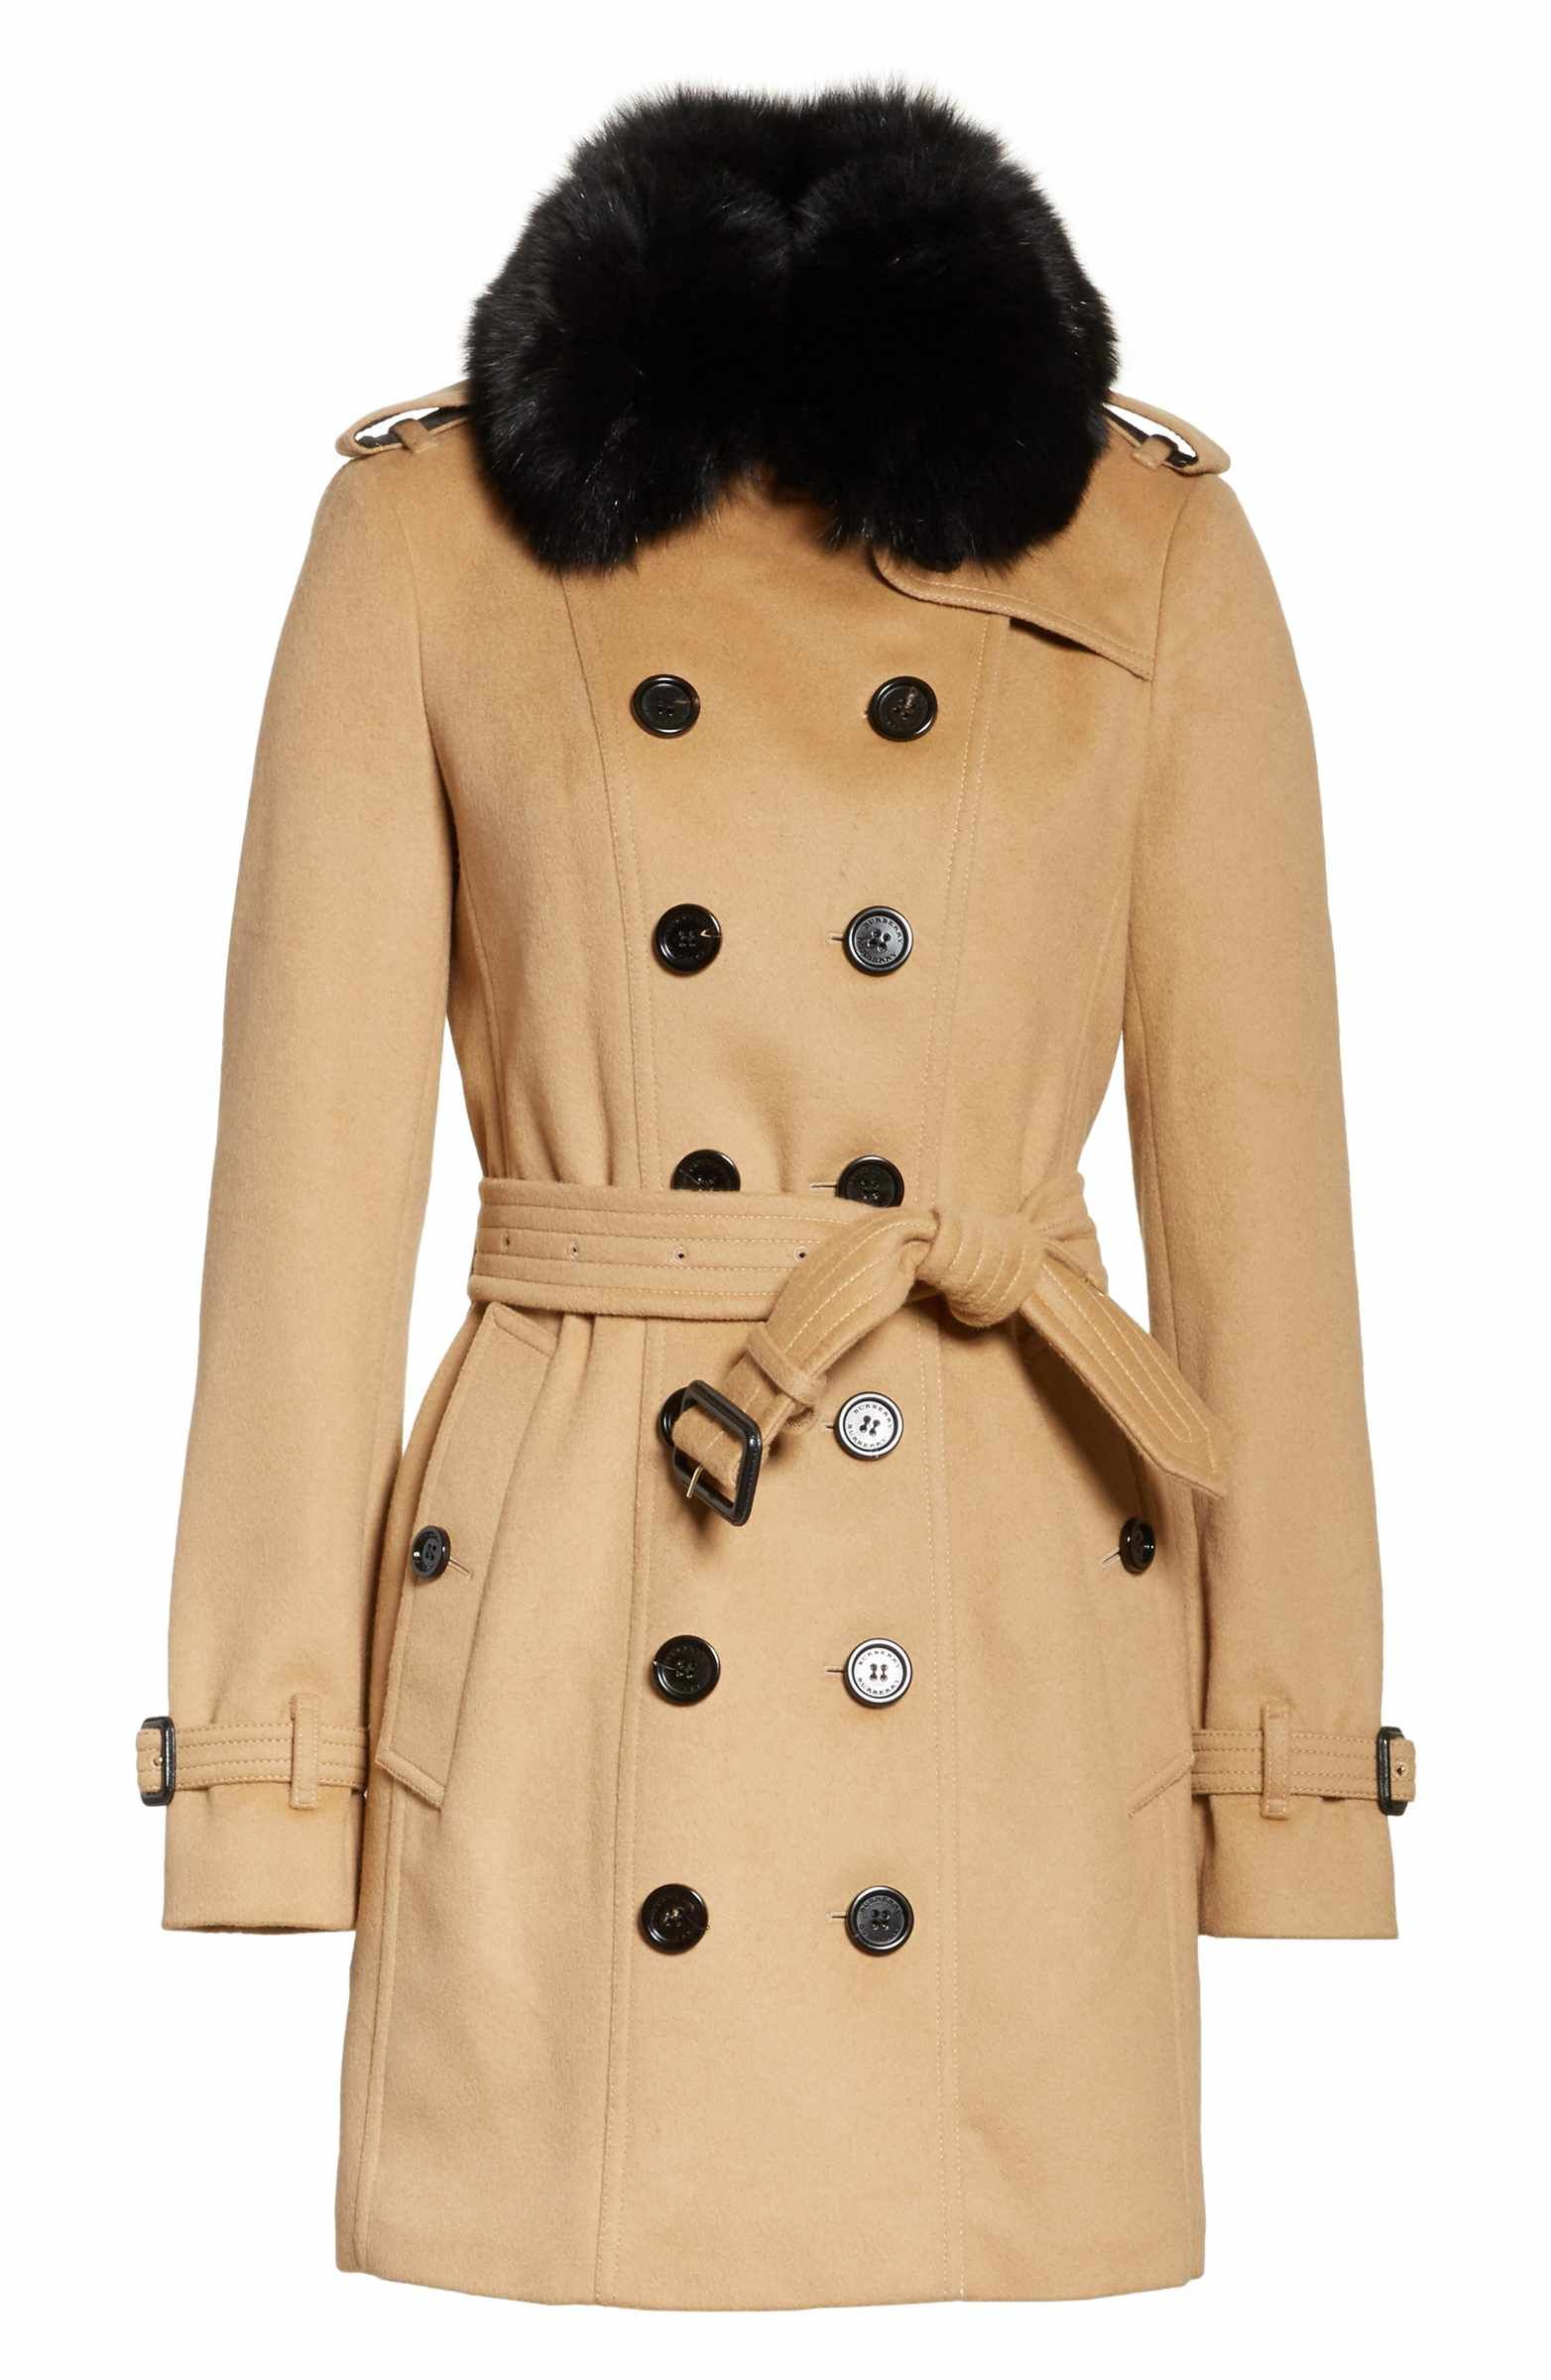 4545e0df4e8c57 Main Image - Burberry Sandringham Wool & Cashmere Trench Coat with Removable  Genuine Fox Fur Collar